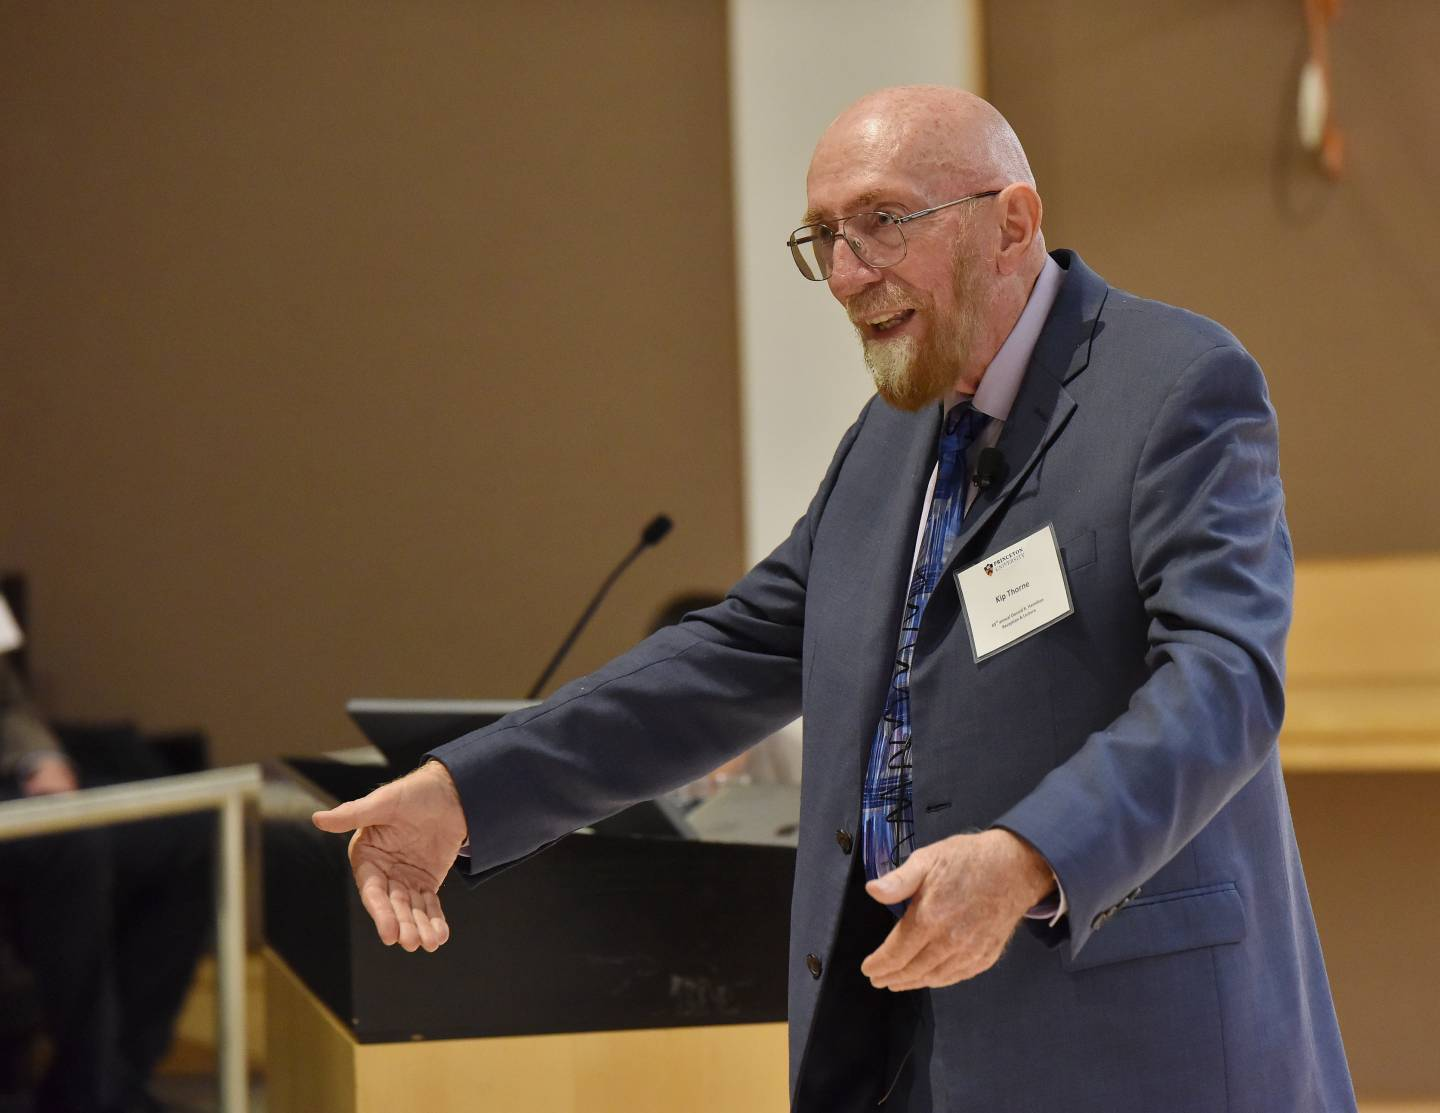 Kip Thorne at podium